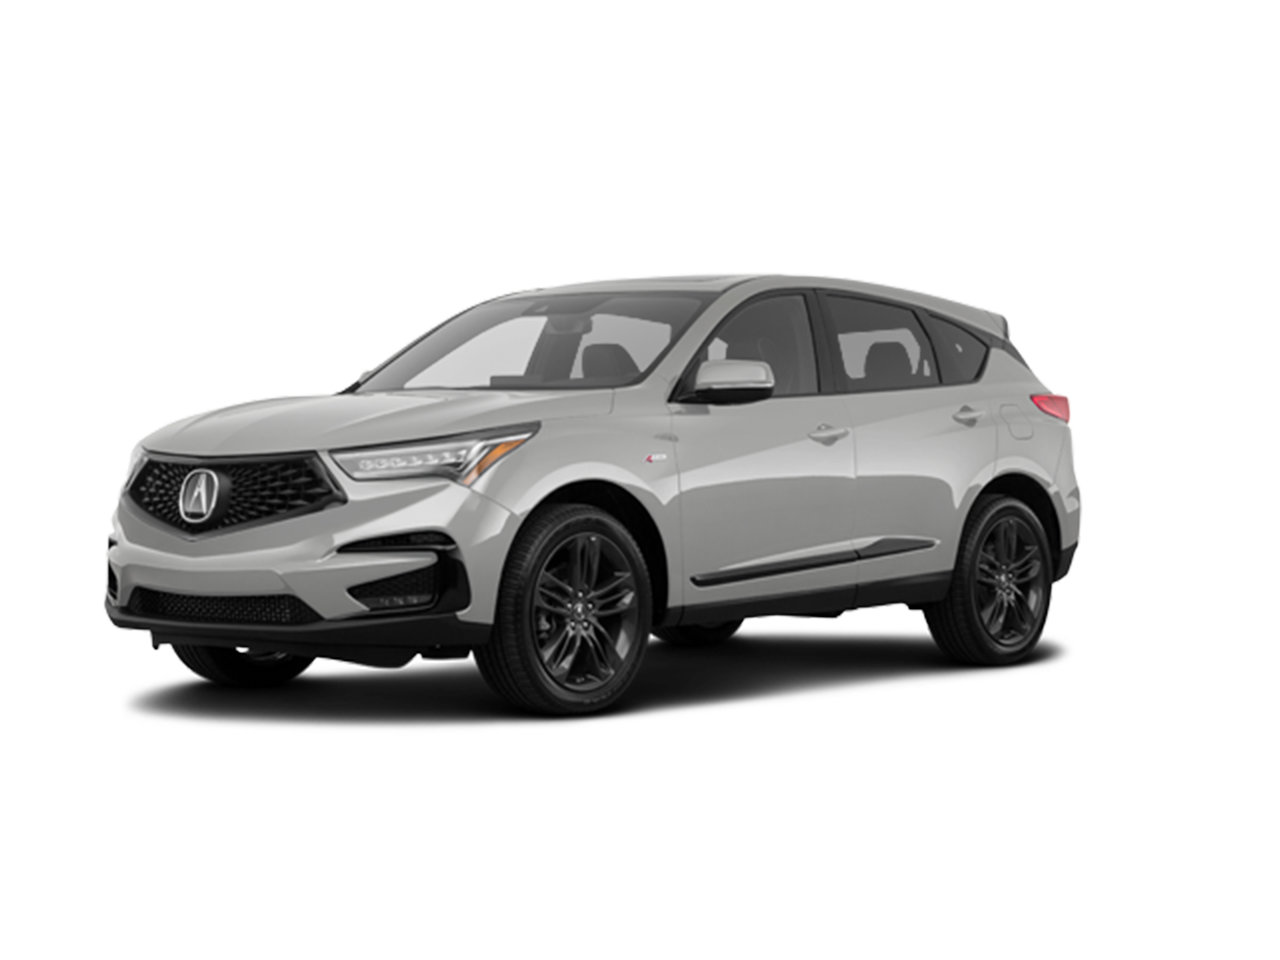 2019 RDX with A-SPEC Package